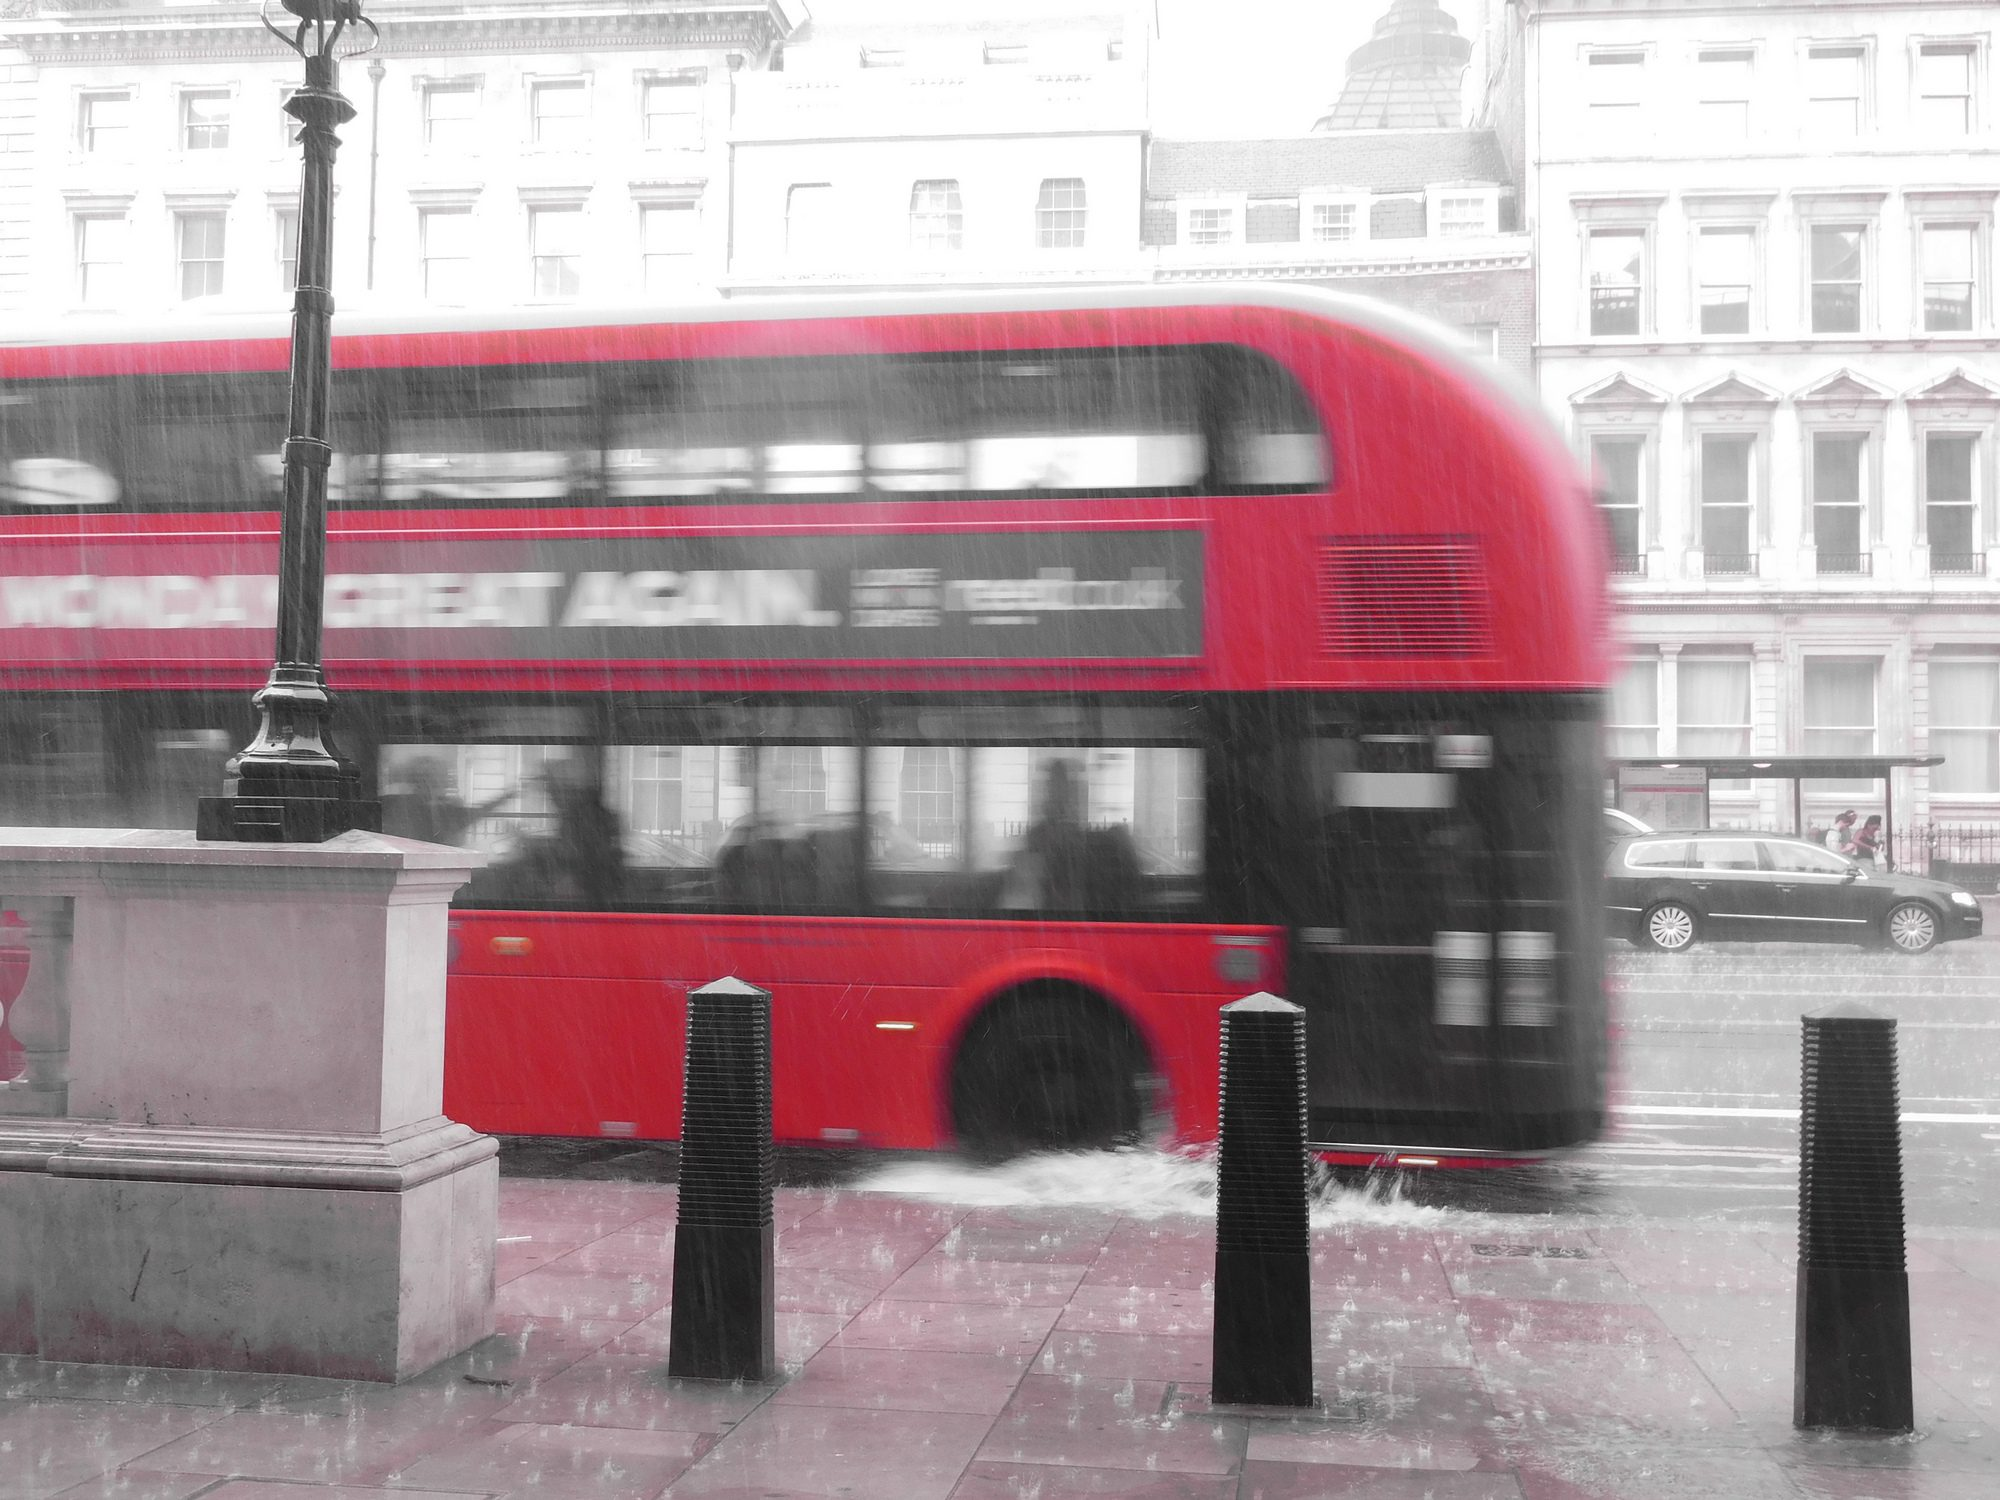 London-Bus im Regen